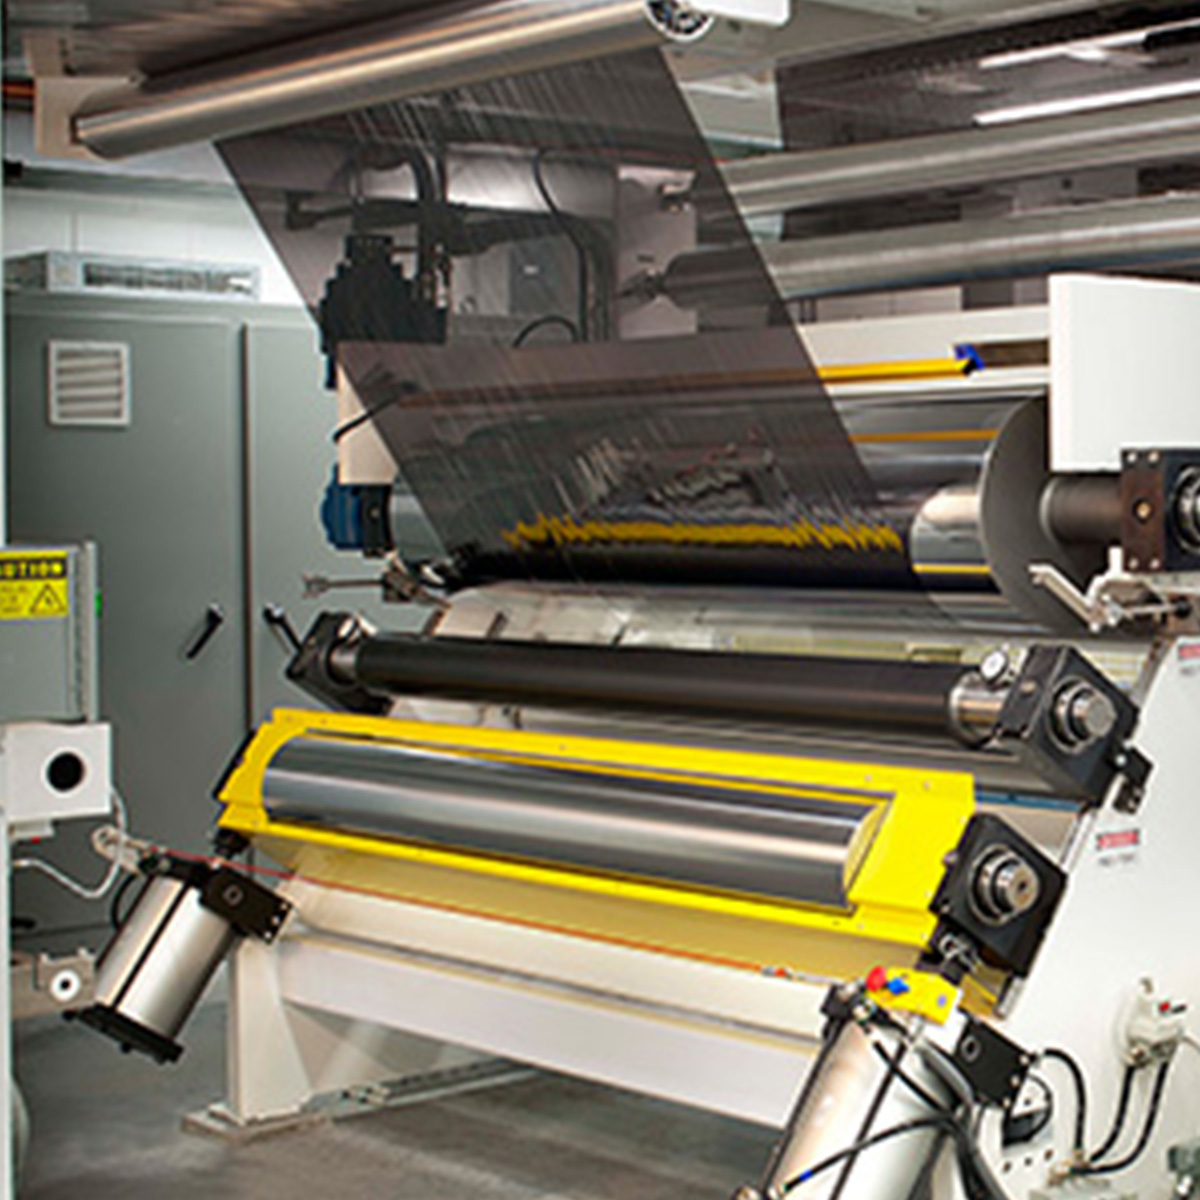 Coating and laminating